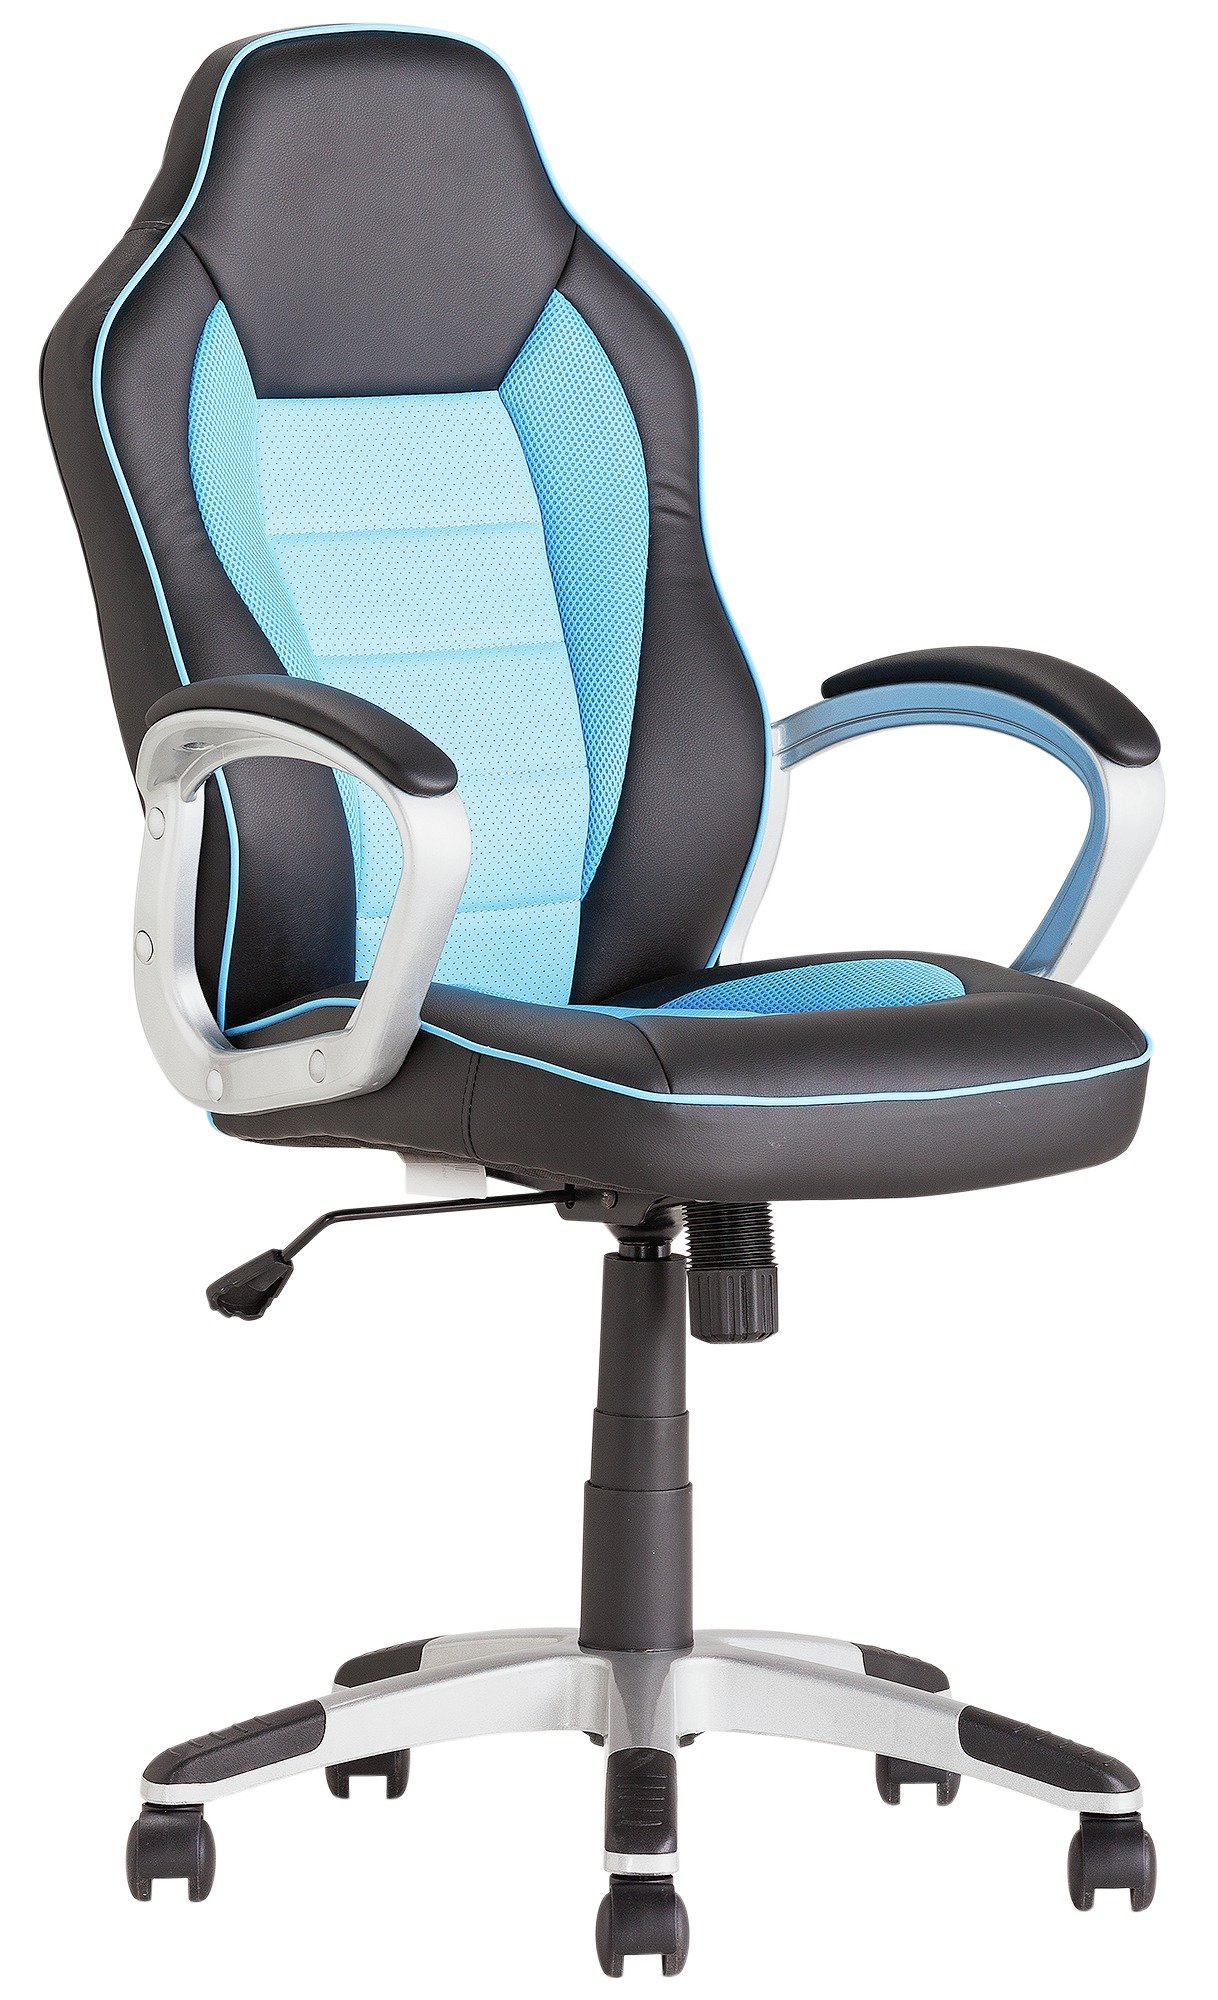 buy home racing style office gaming chair - blue at argos.co.uk